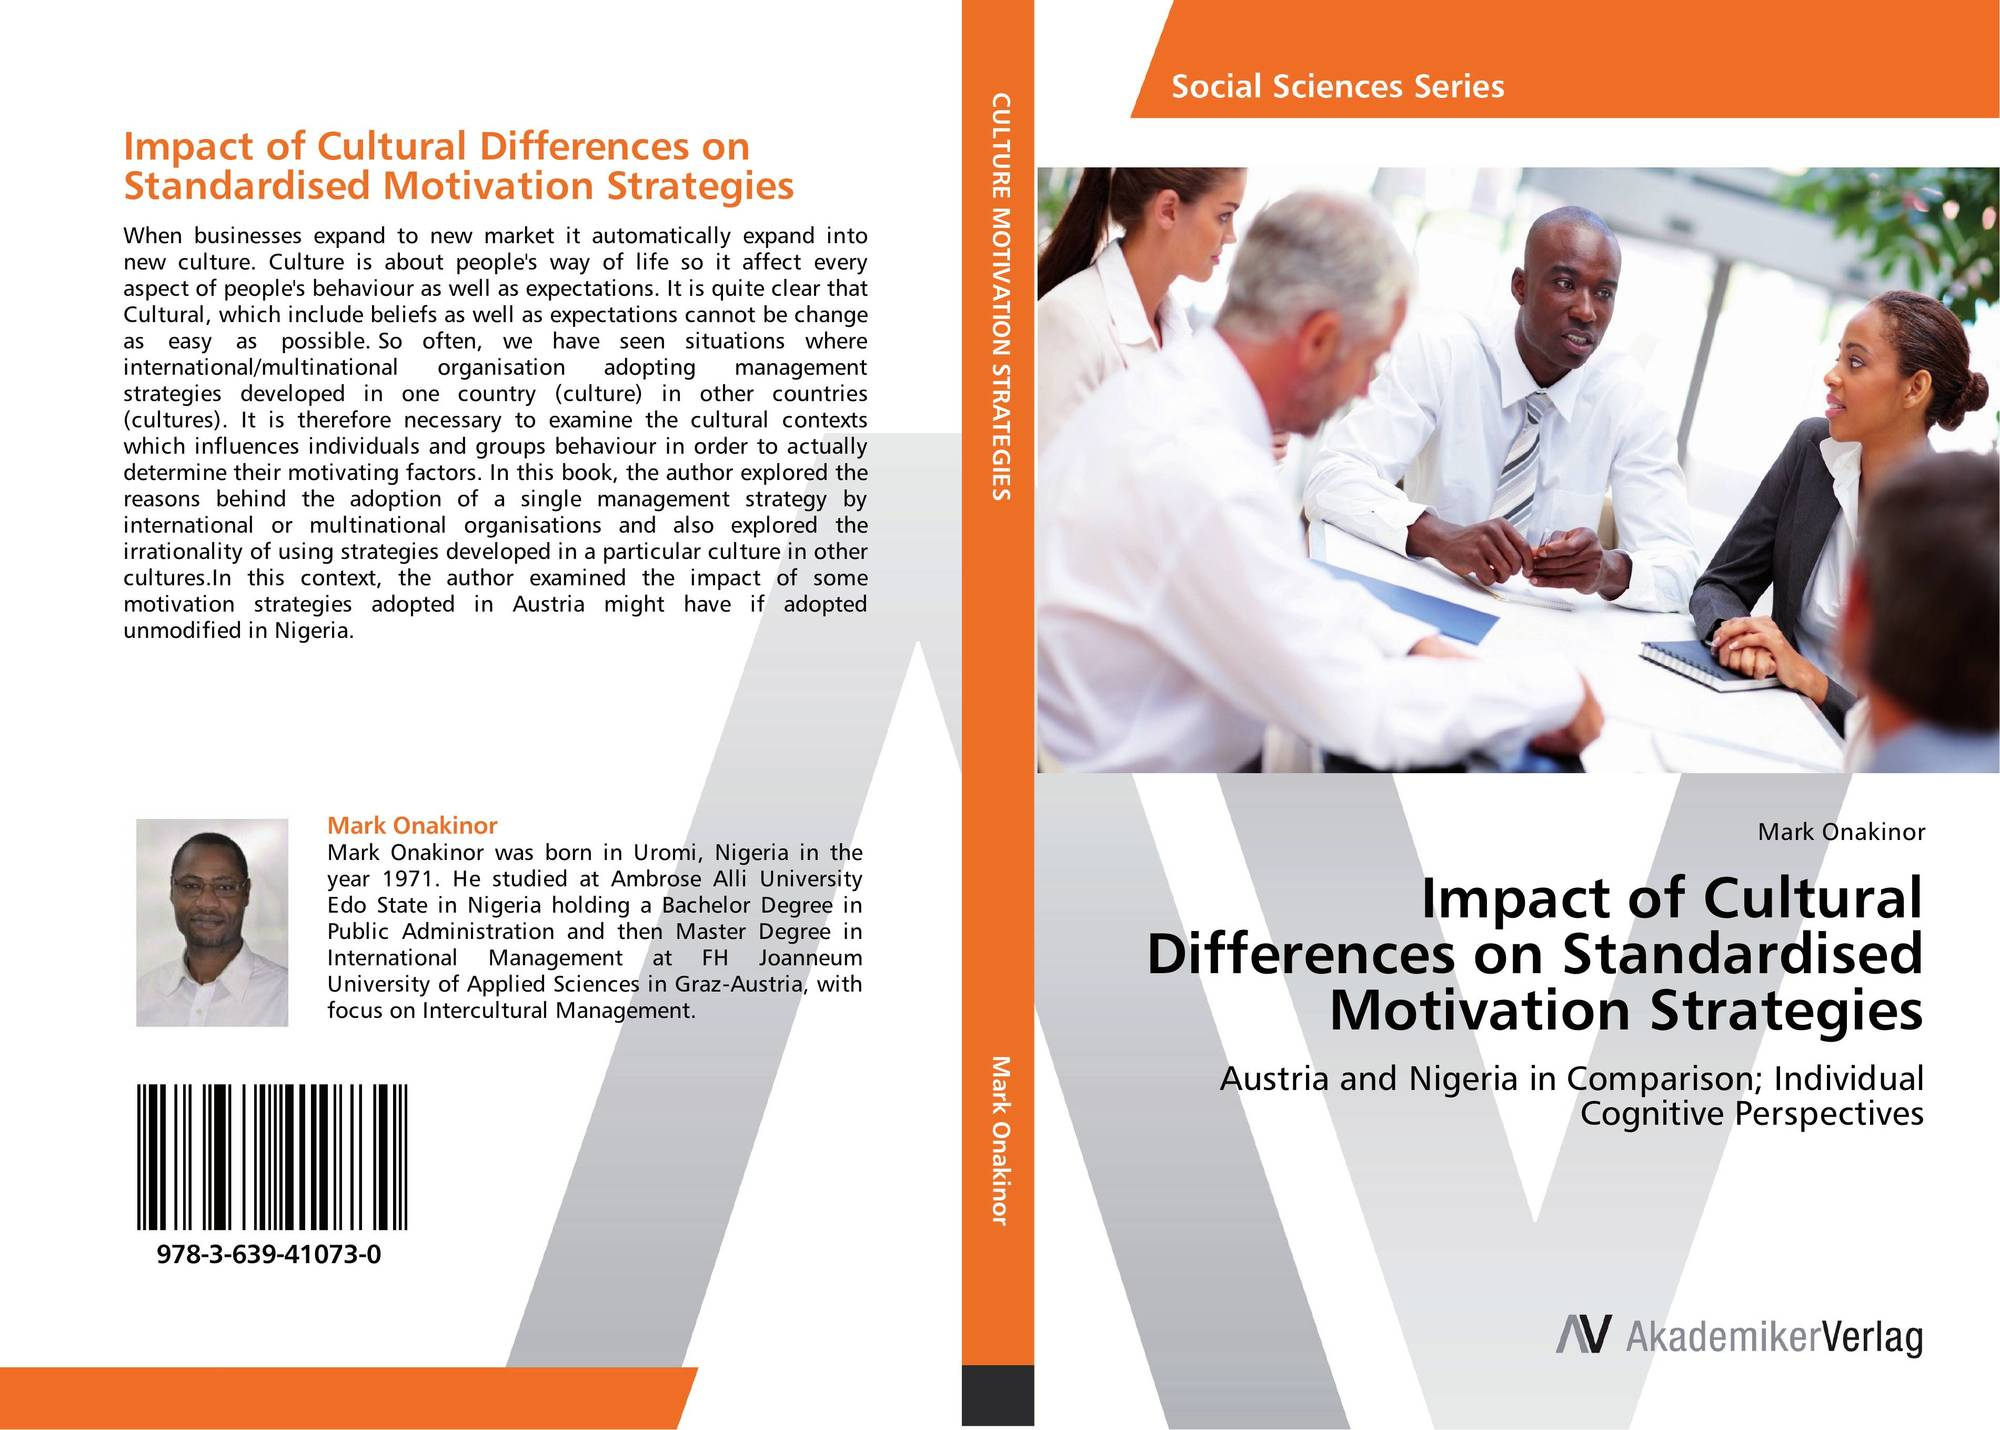 international business strategies impact of culture management essay Recognizing and understanding how culture affects international business in three core areas: communication, etiquette, and organizational hierarchy can help you to avoid misunderstandings with colleagues and clients from abroad and excel in a globalized business environment.